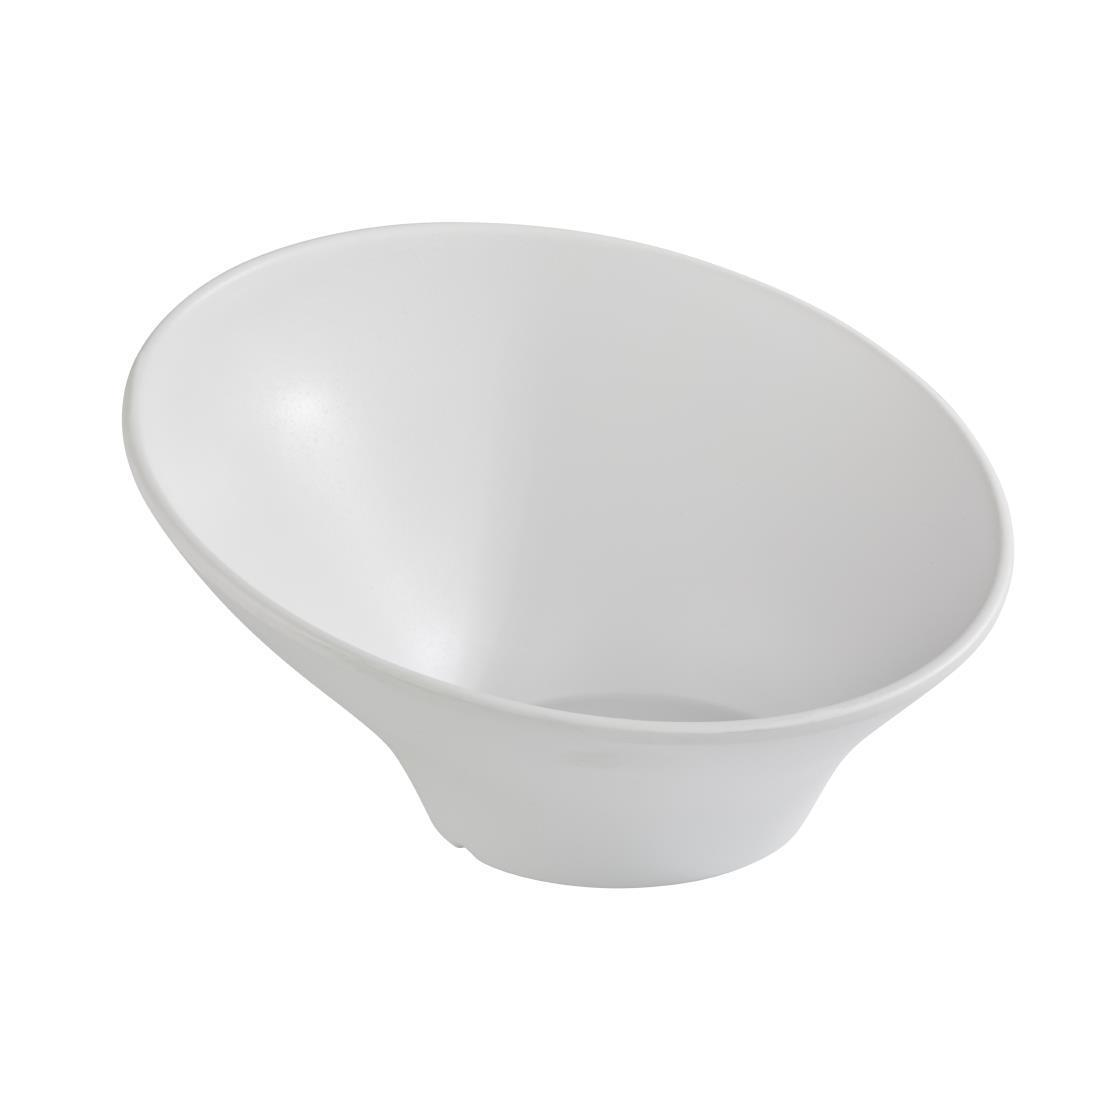 APS Zen Melamine Round Sloped Bowl White 800ml - Each - DA292